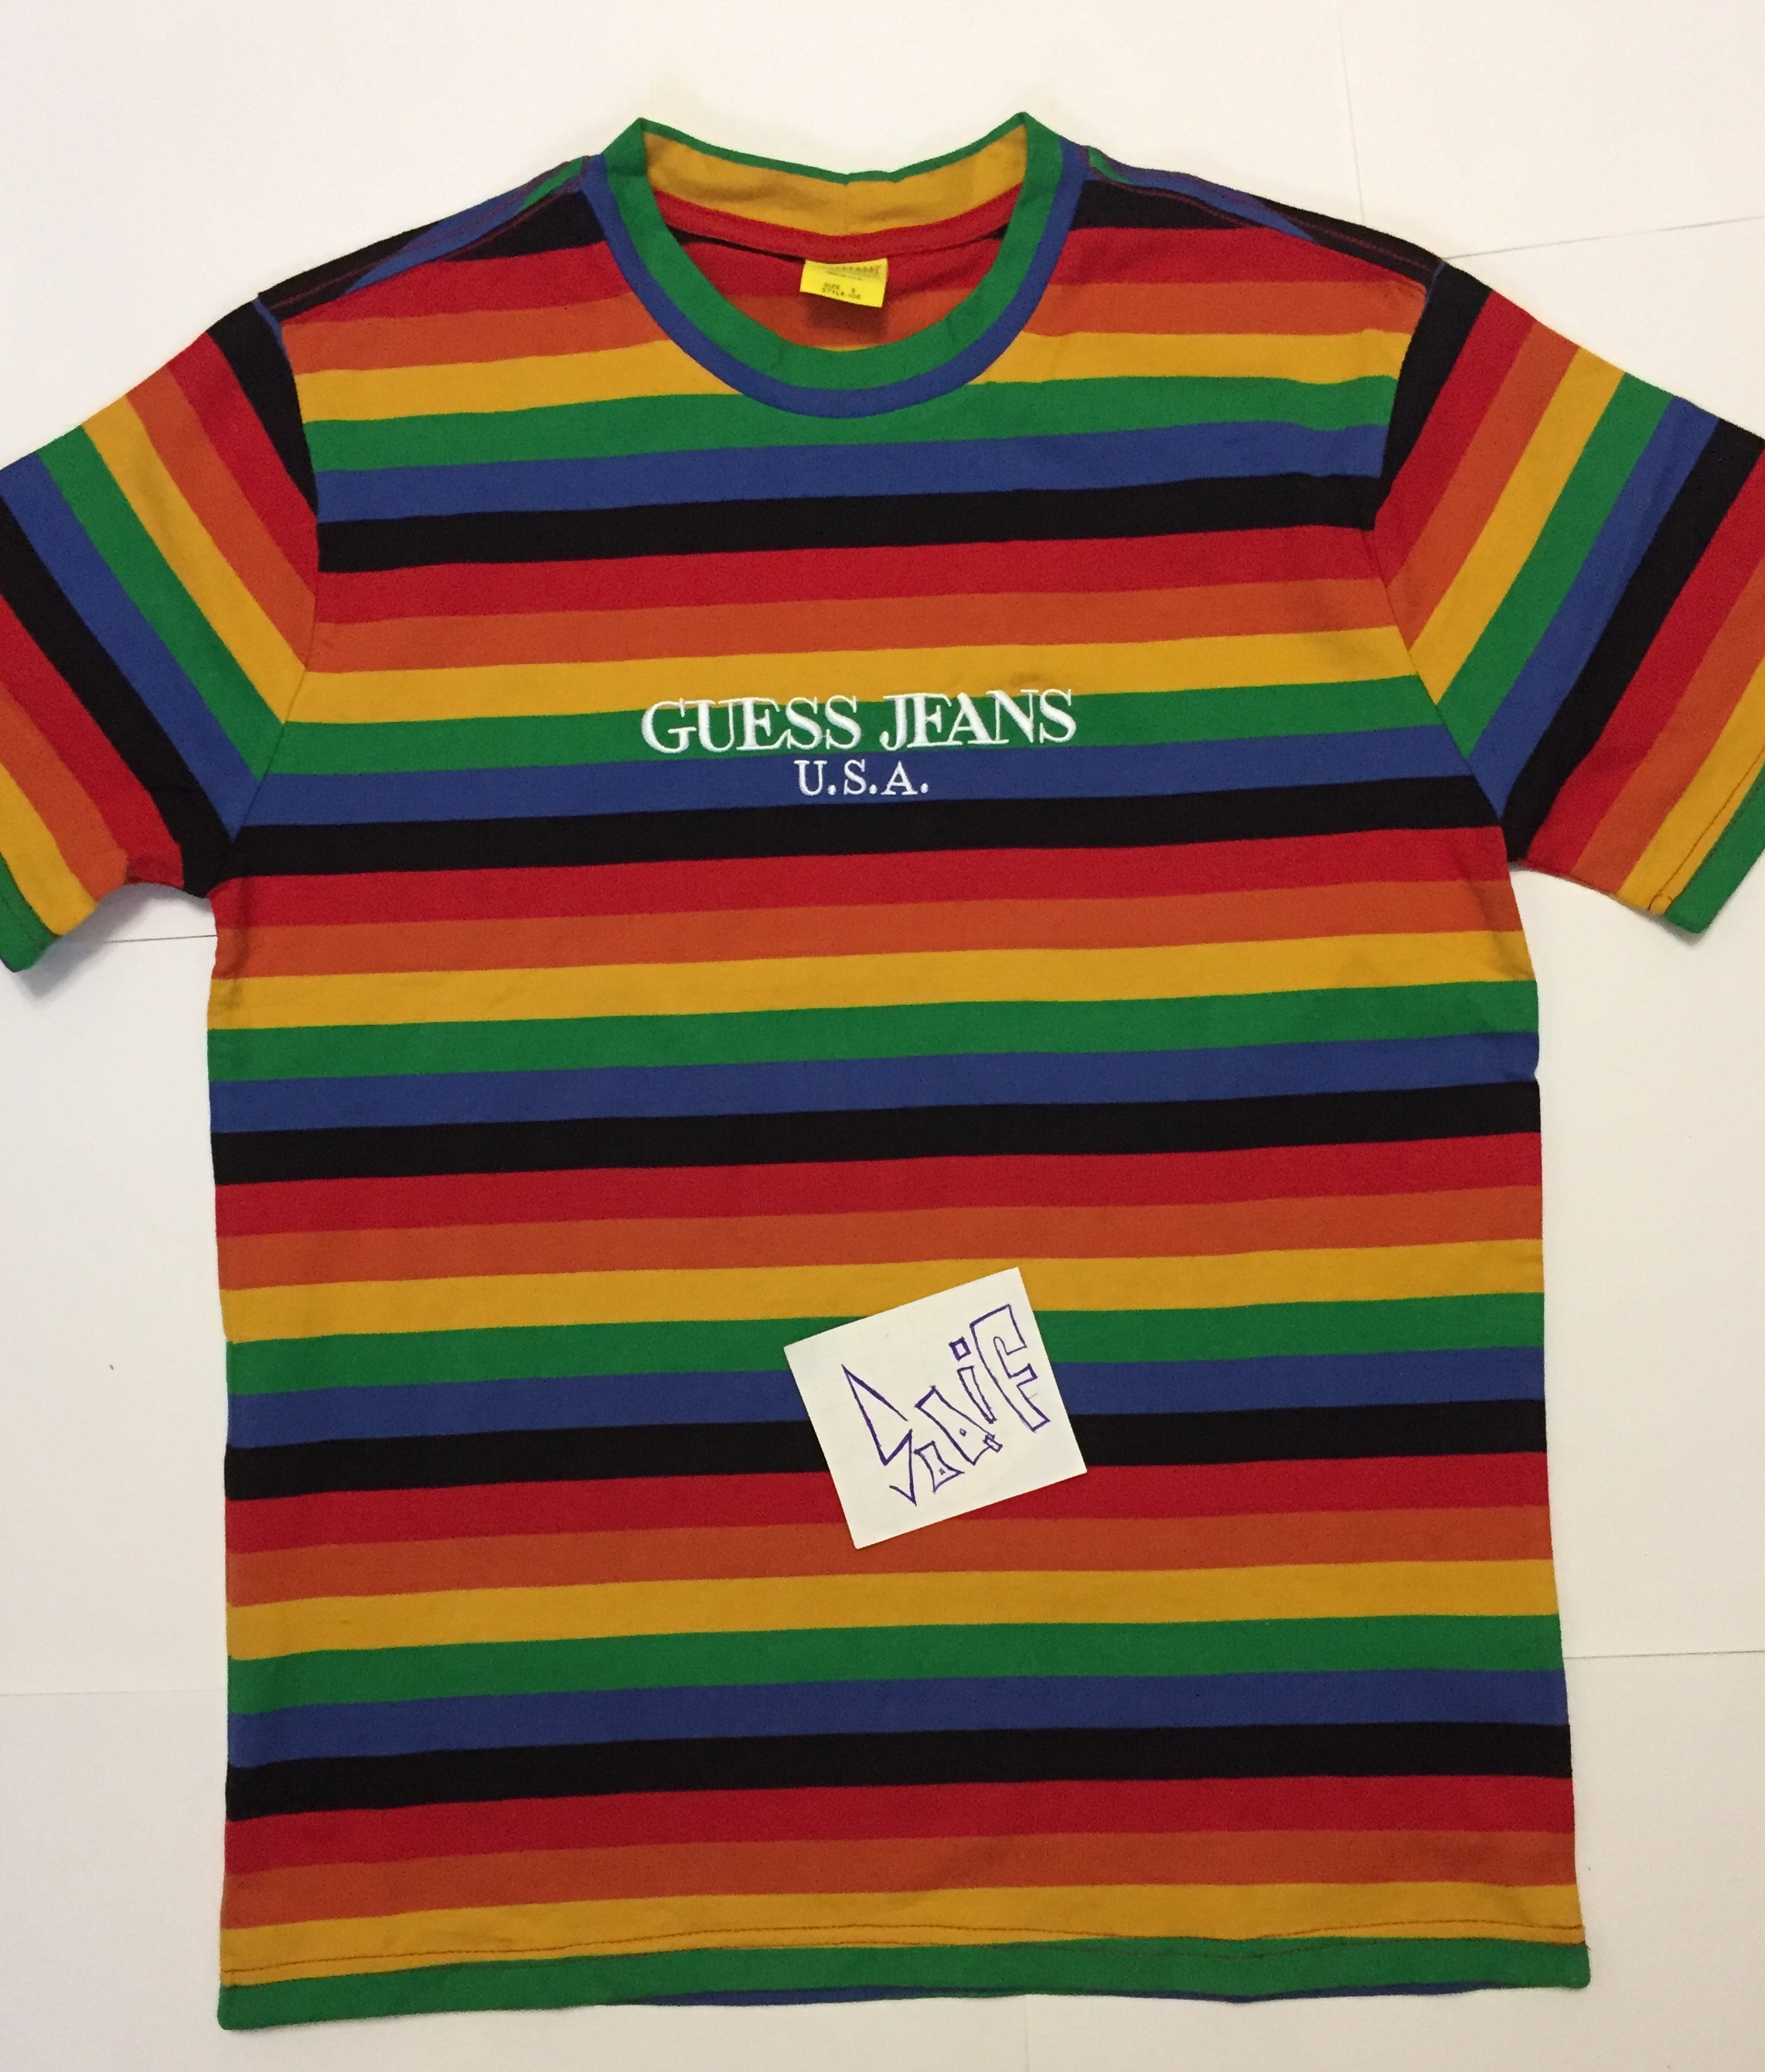 7edef81569e7 Guess Guess X Sean Wotherspoon Rainbow Striped Tee, S Size | Grailed